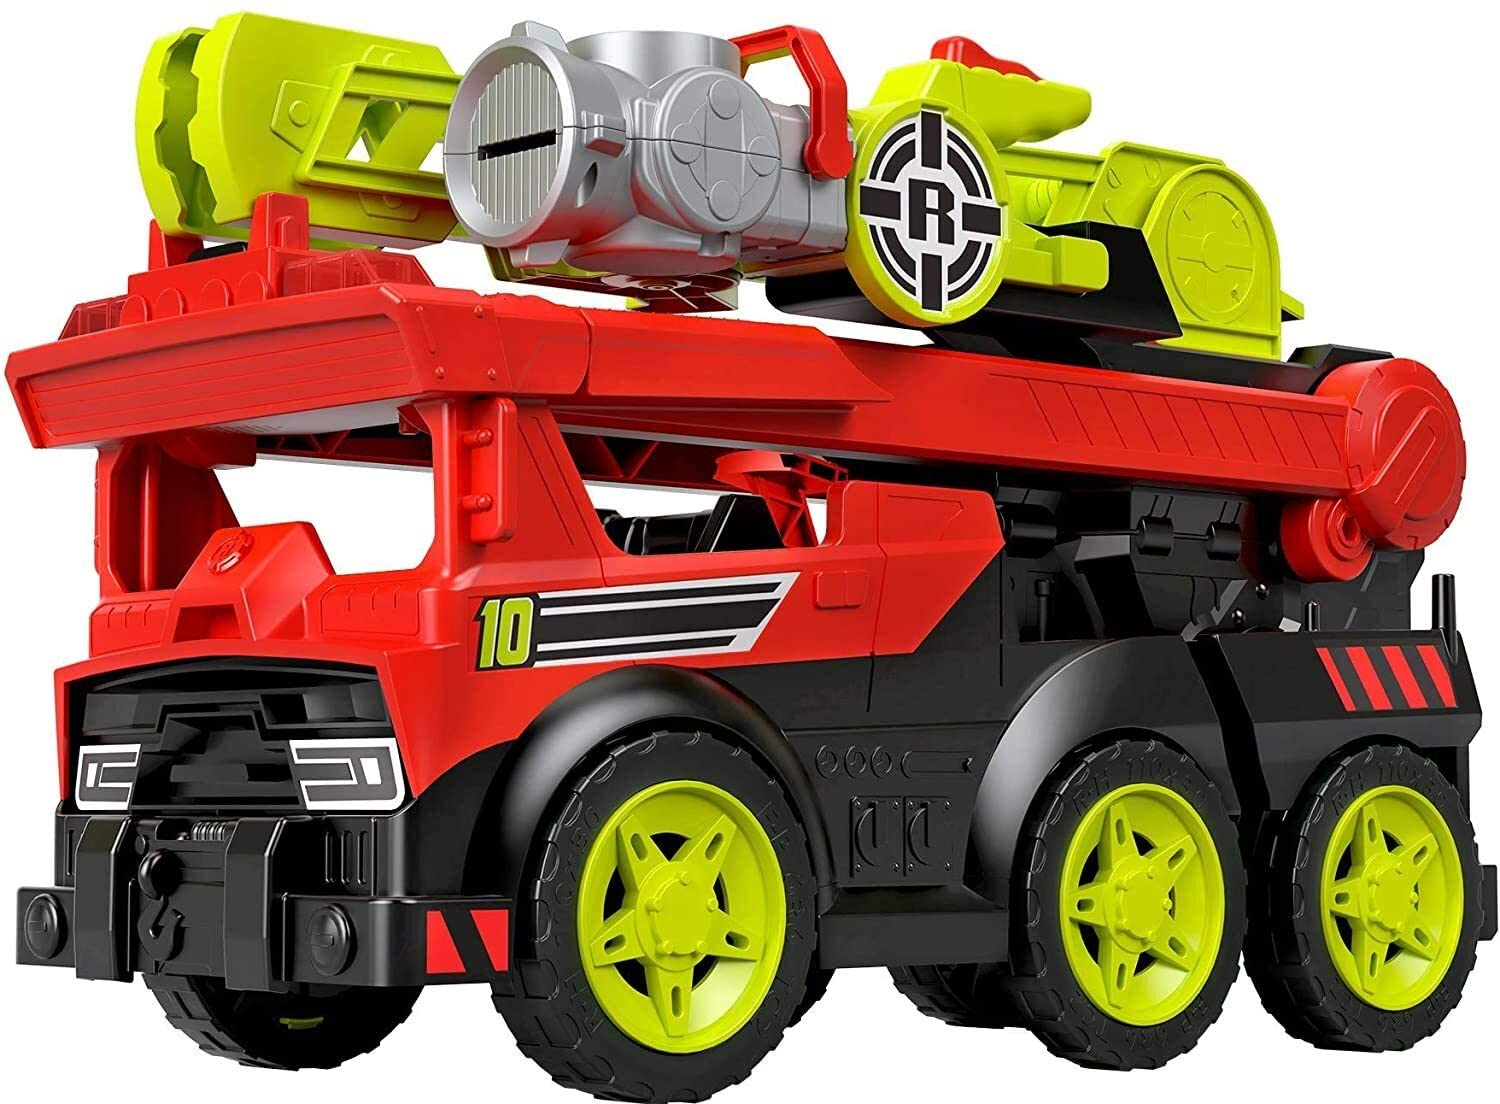 Fisher-Price Rescue Heroes Transforming Fire Truck with Lights & Sounds, Multicolor, Model:GFW30